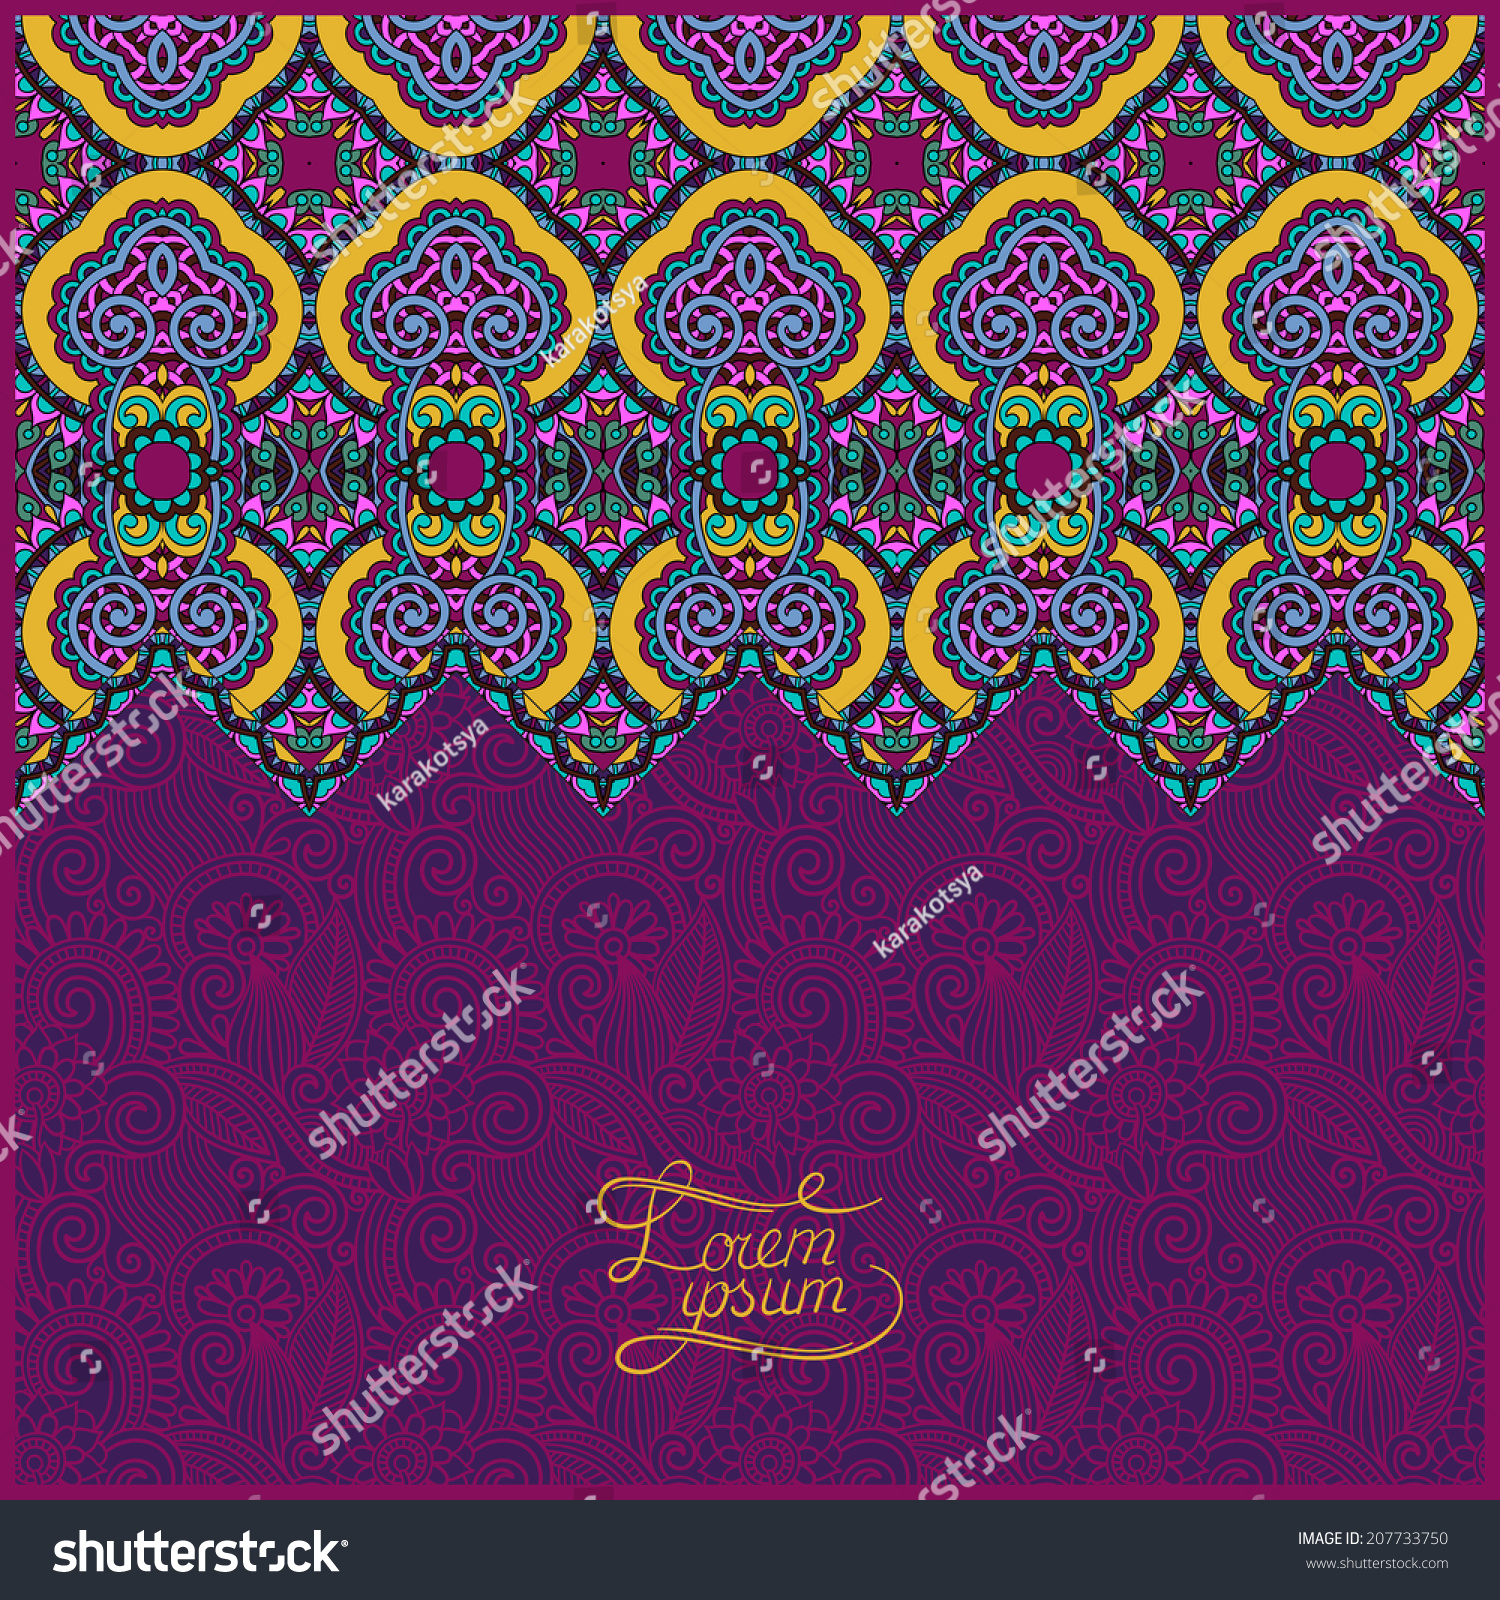 Fabric Book Cover Template : Moroccan template place your text you stock vector